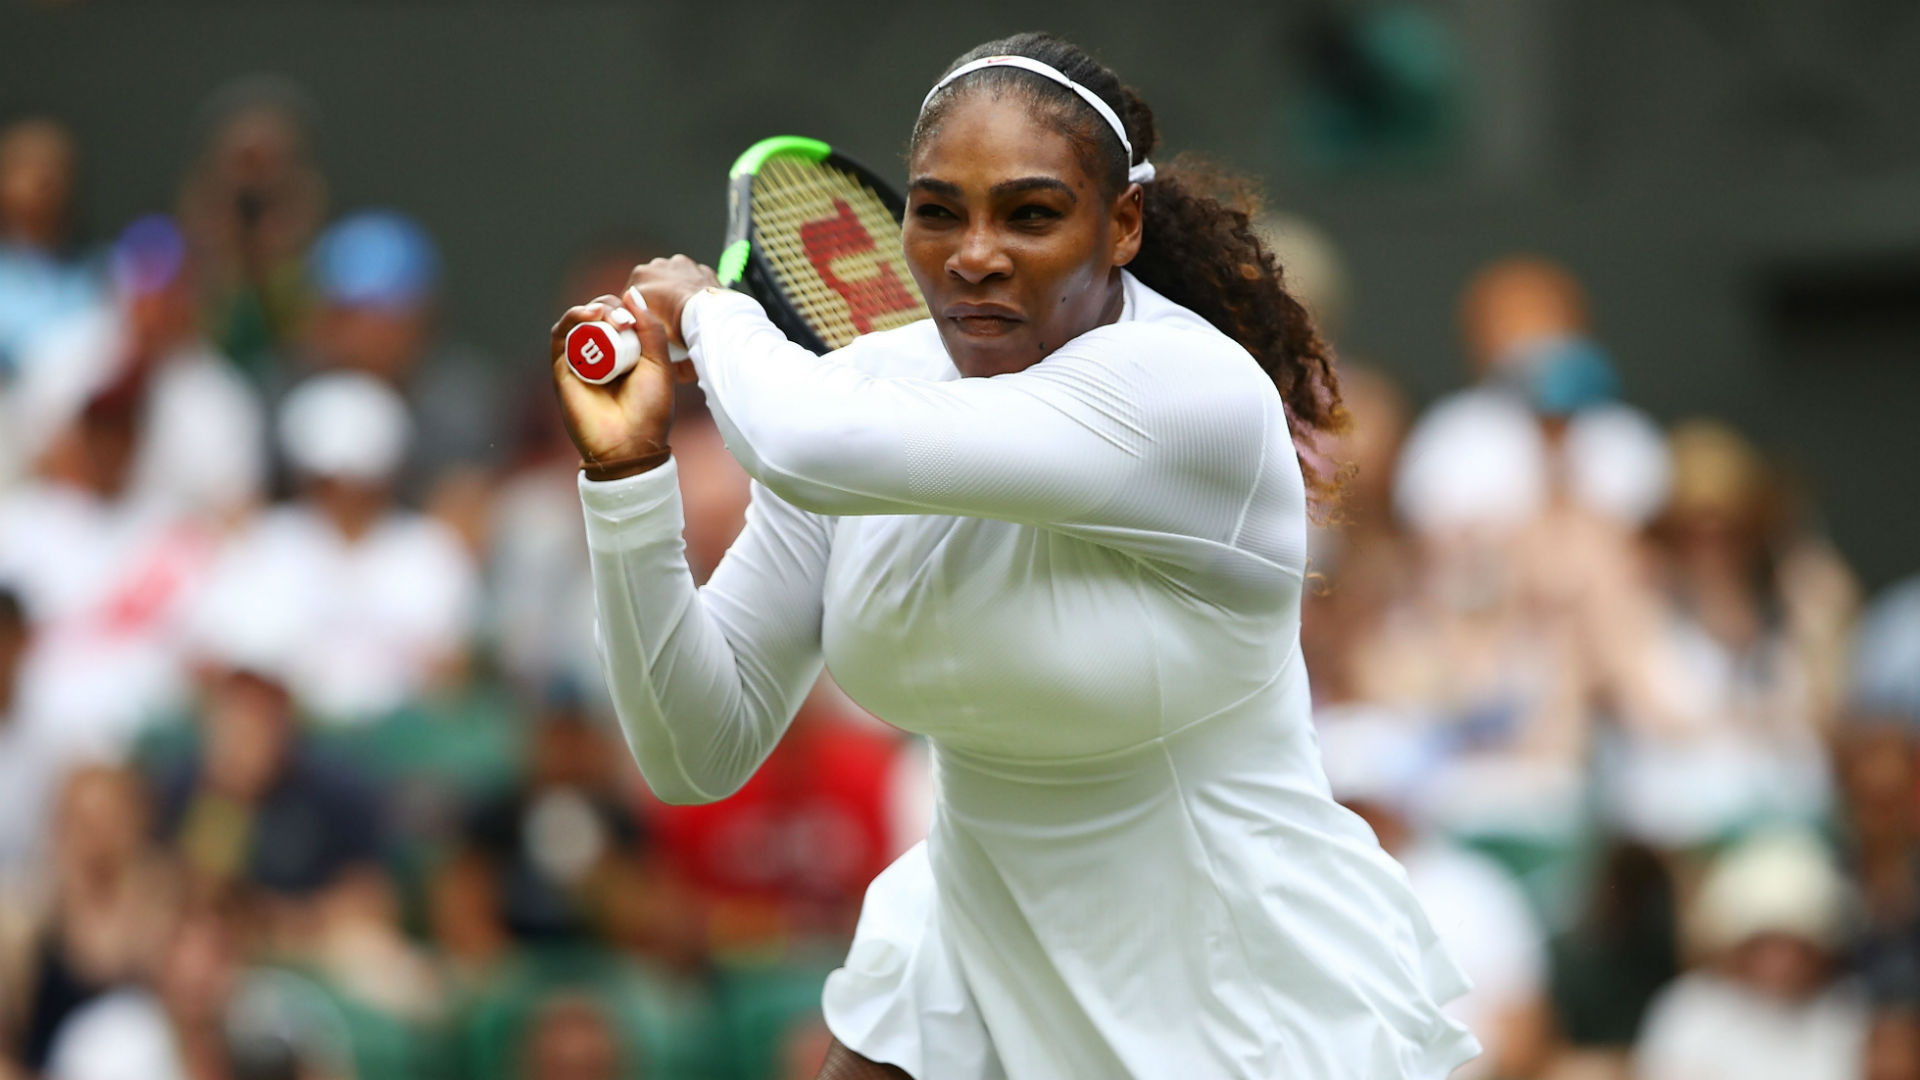 Image result for serena williams wimbledon 2018